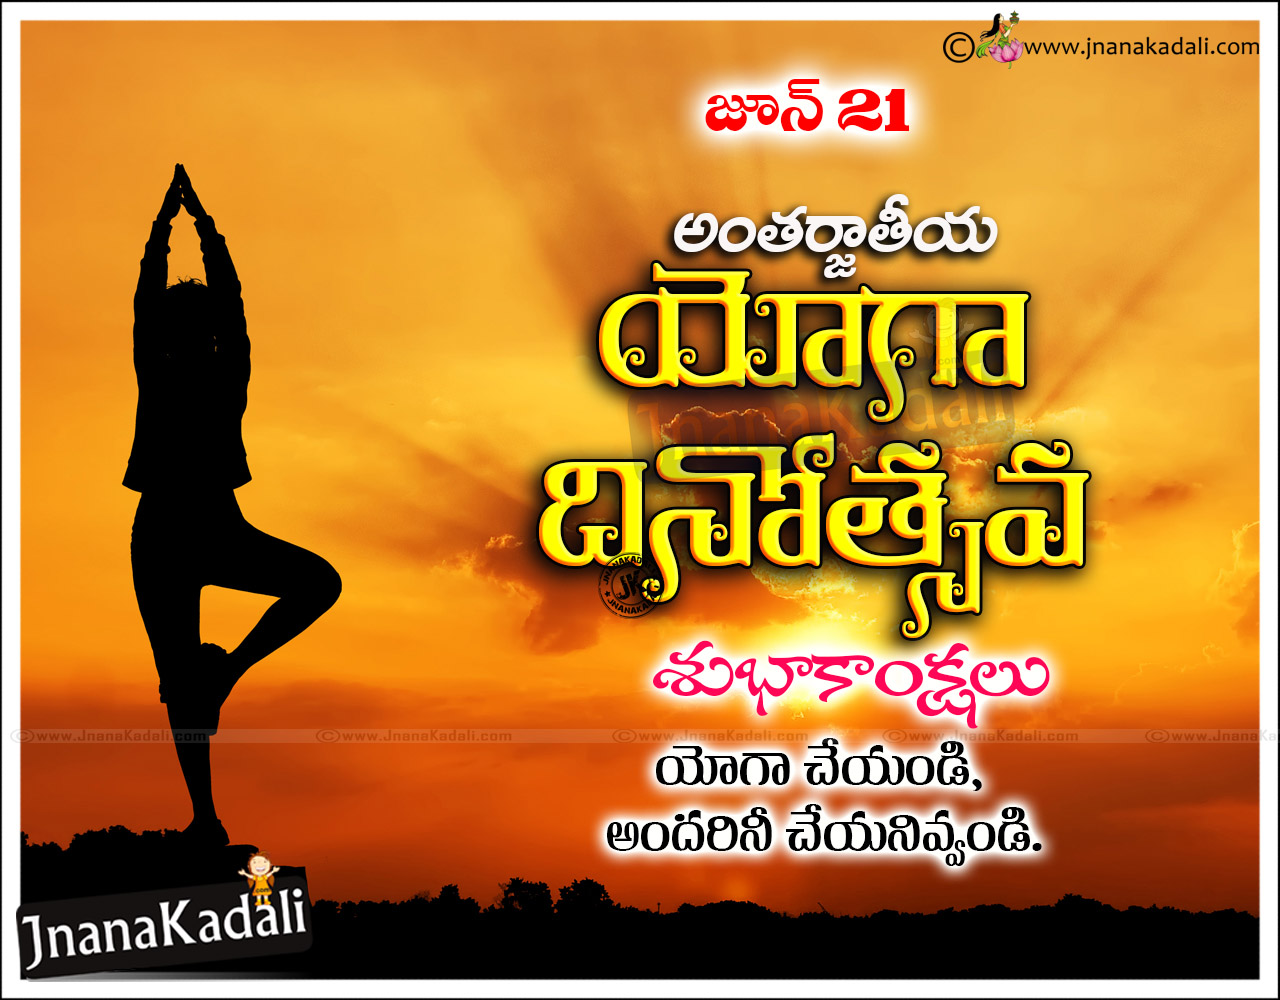 Telugu Quotes My Findings Pinterest Telugu And Quotes 2 Health First